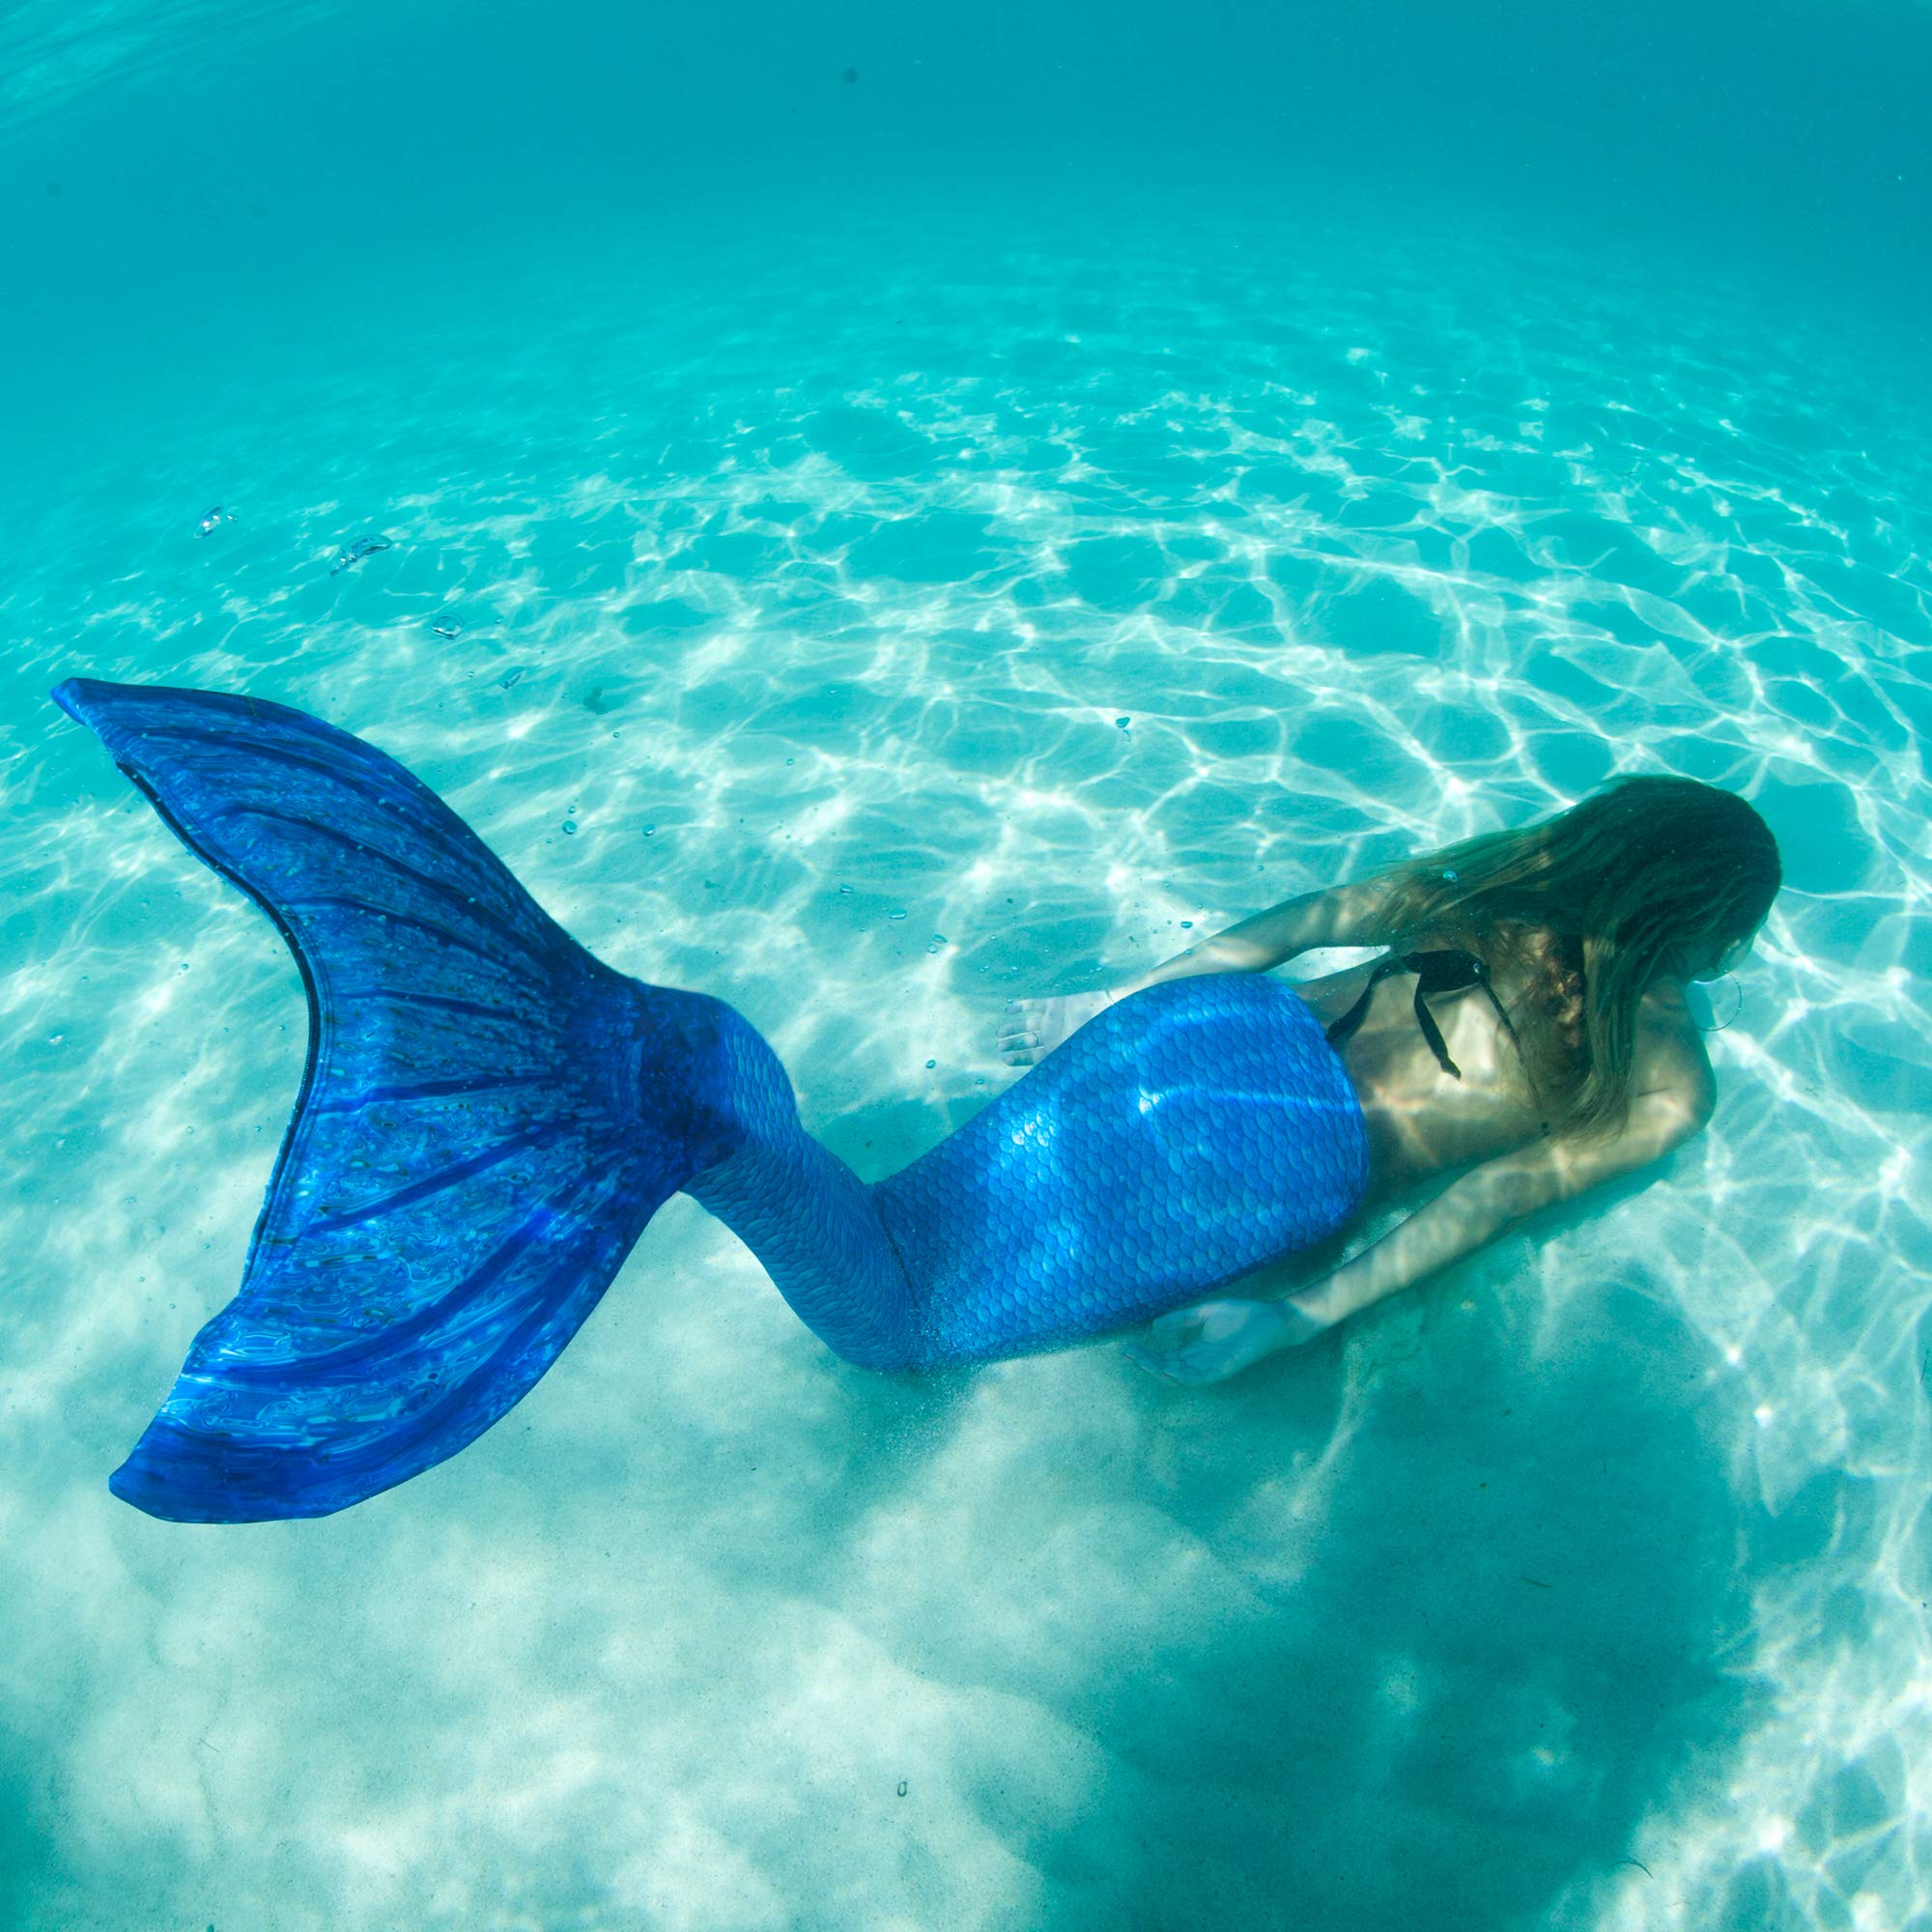 Fin Fun Mermaid Tail Only, Reinforced Tips, NO Monofin, Asian Magenta, Size Child 10 by Fin Fun (Image #6)